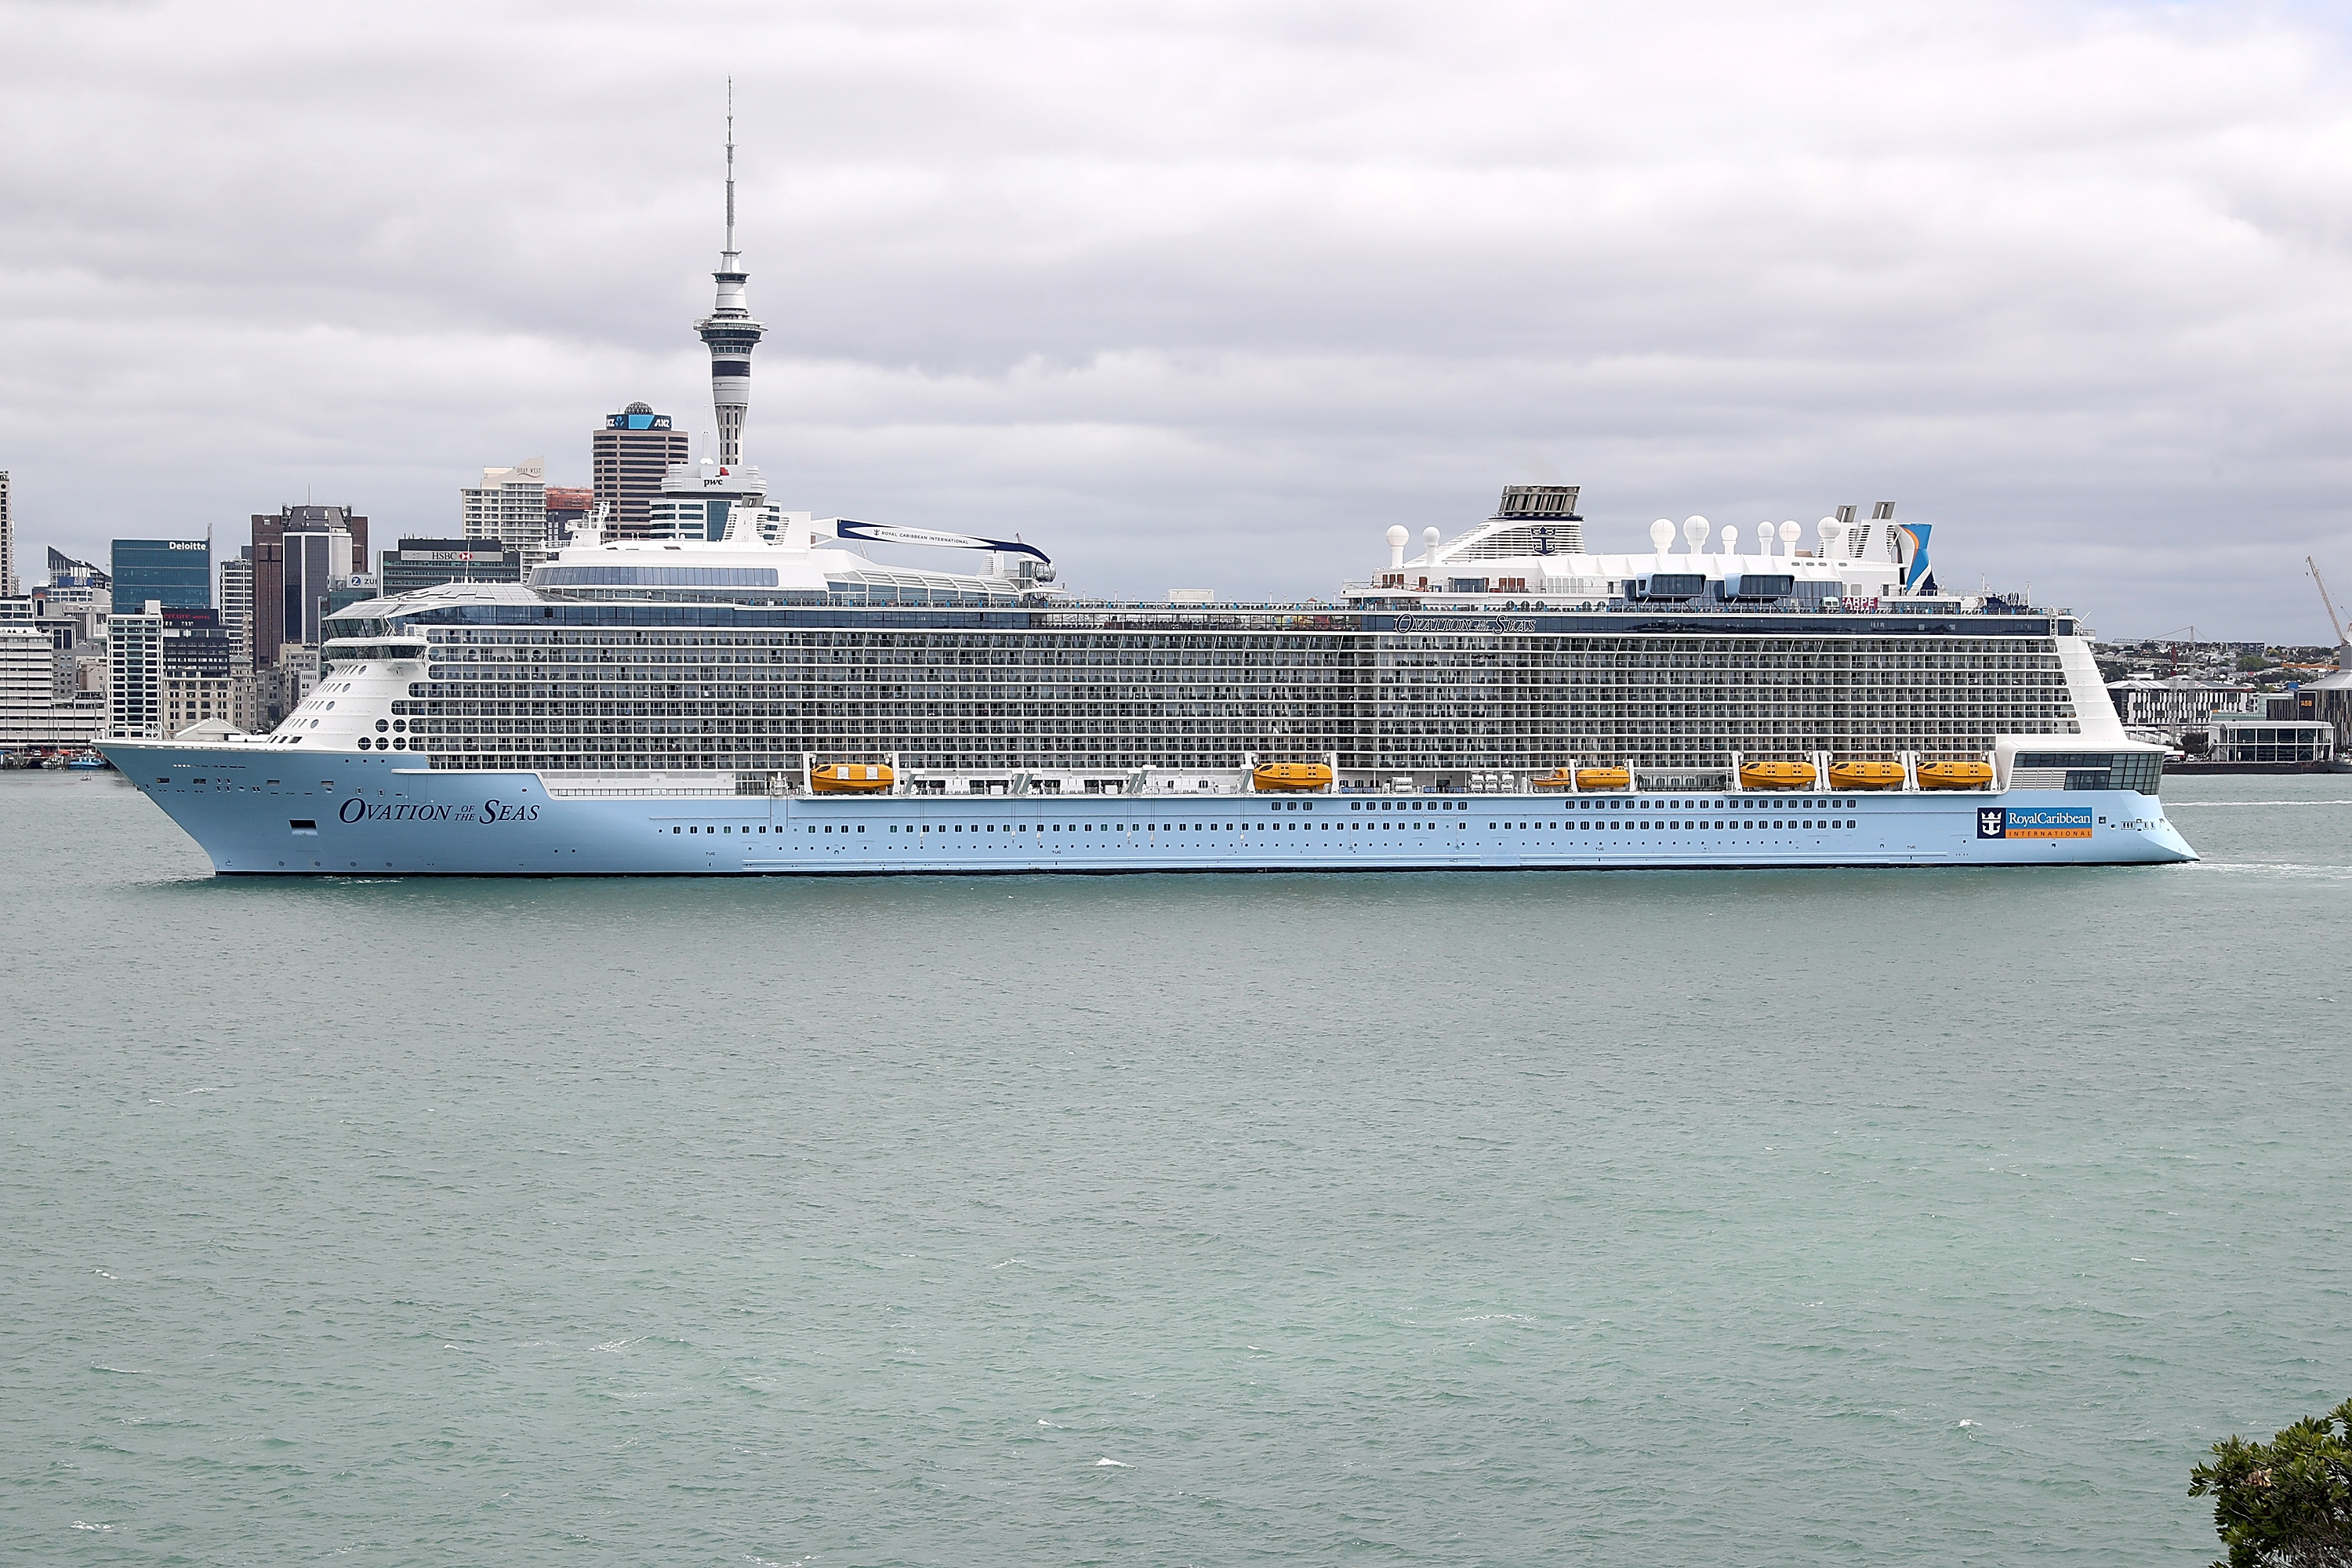 Ovation of the Seas anchored in the Waitemata Harbour attracts attention from Devonport locals on December 27, 2016 in Auckland, New Zealand.